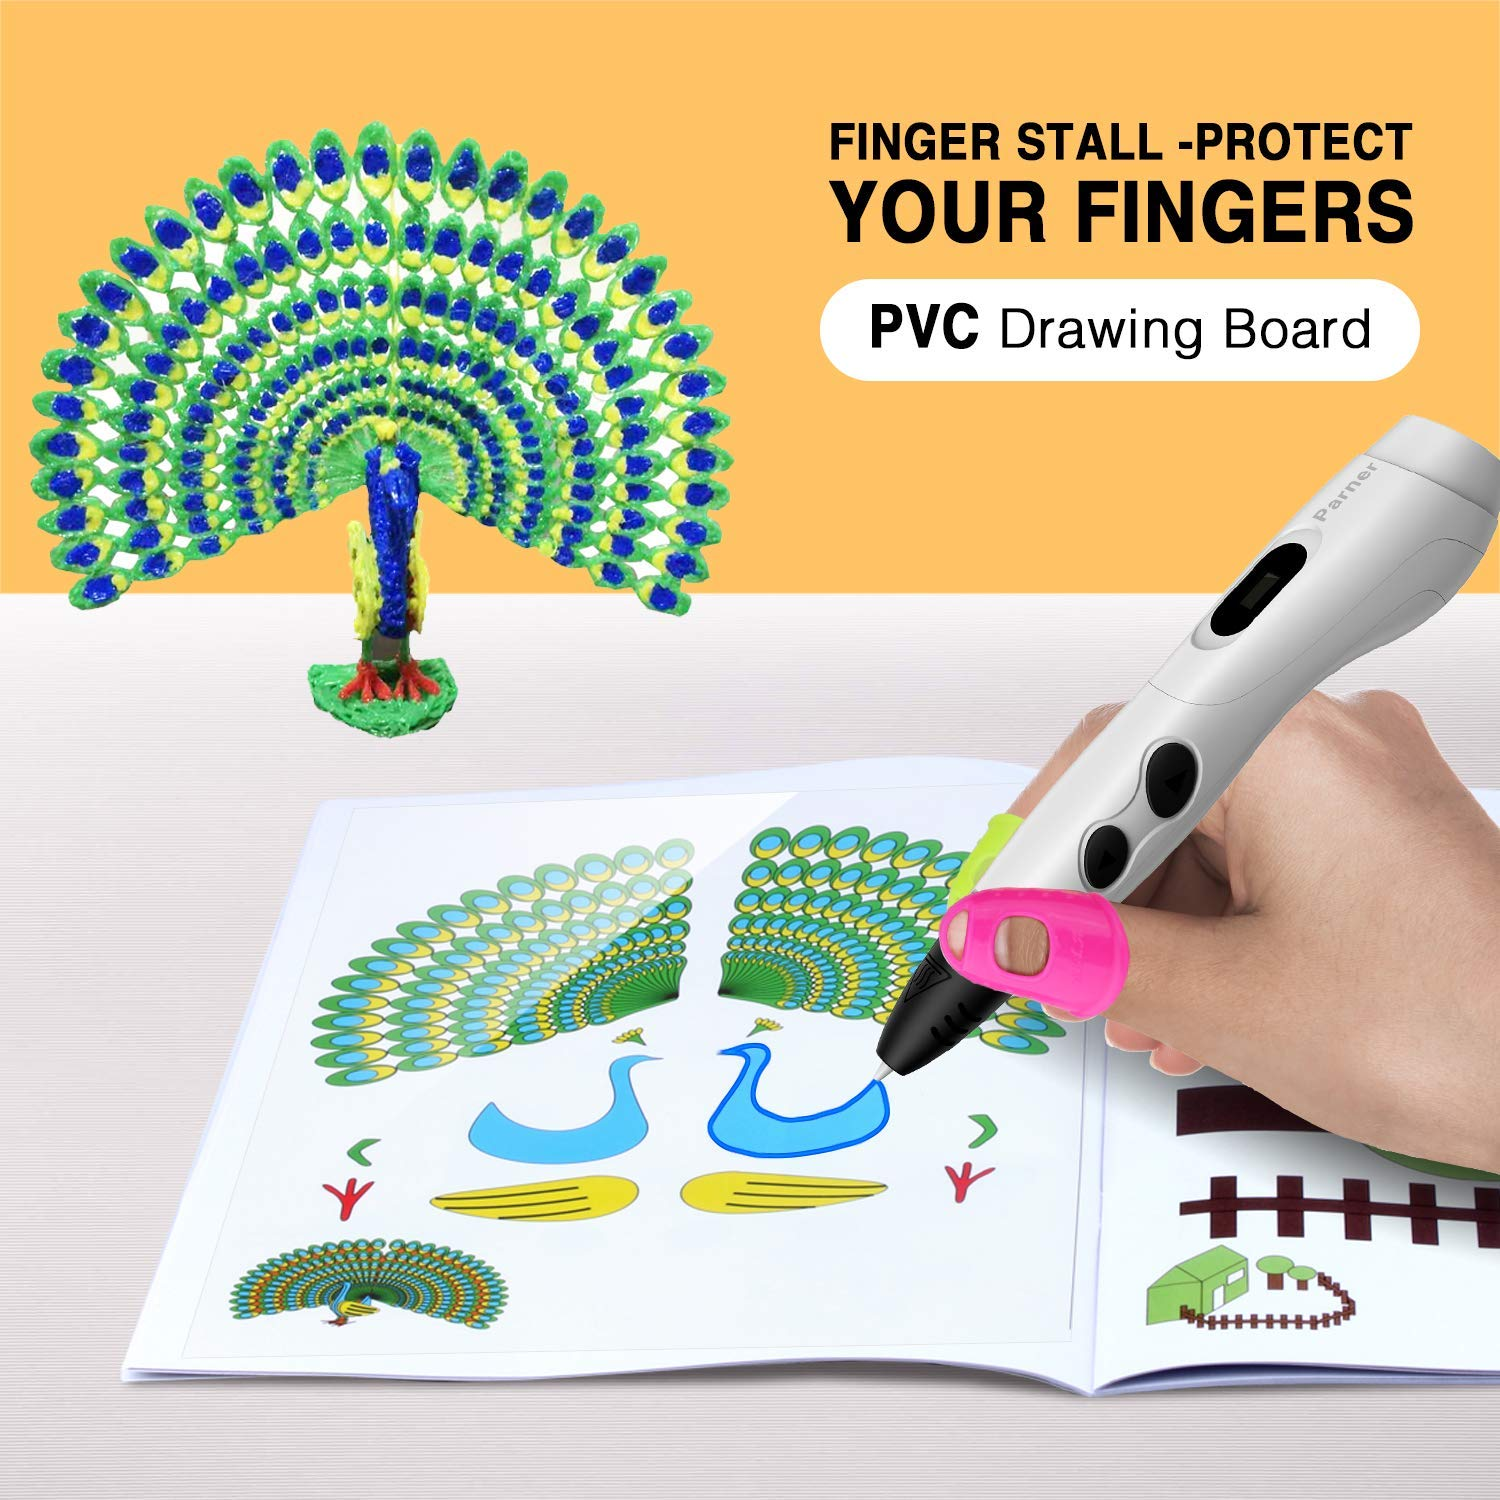 PARNER Large 3D Printing Pen Silicone Design Mat with Basic Template Printing Book Clear PVC Drawing BOAD 2 Silicone Finger Caps Great 3D Pen Drawing Tools